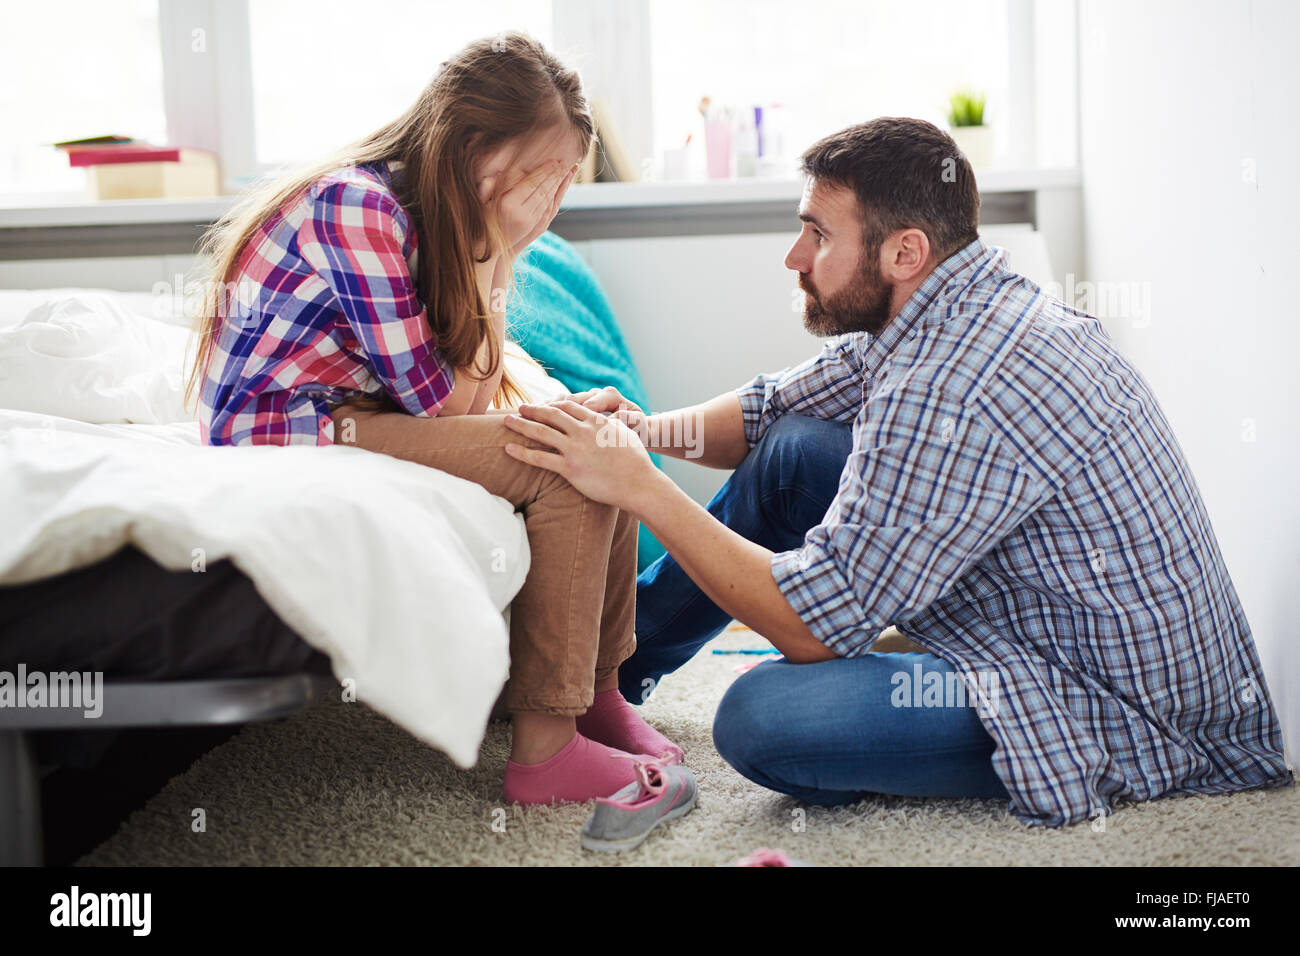 Teenage girl crying while her father reassuring her - Stock Image